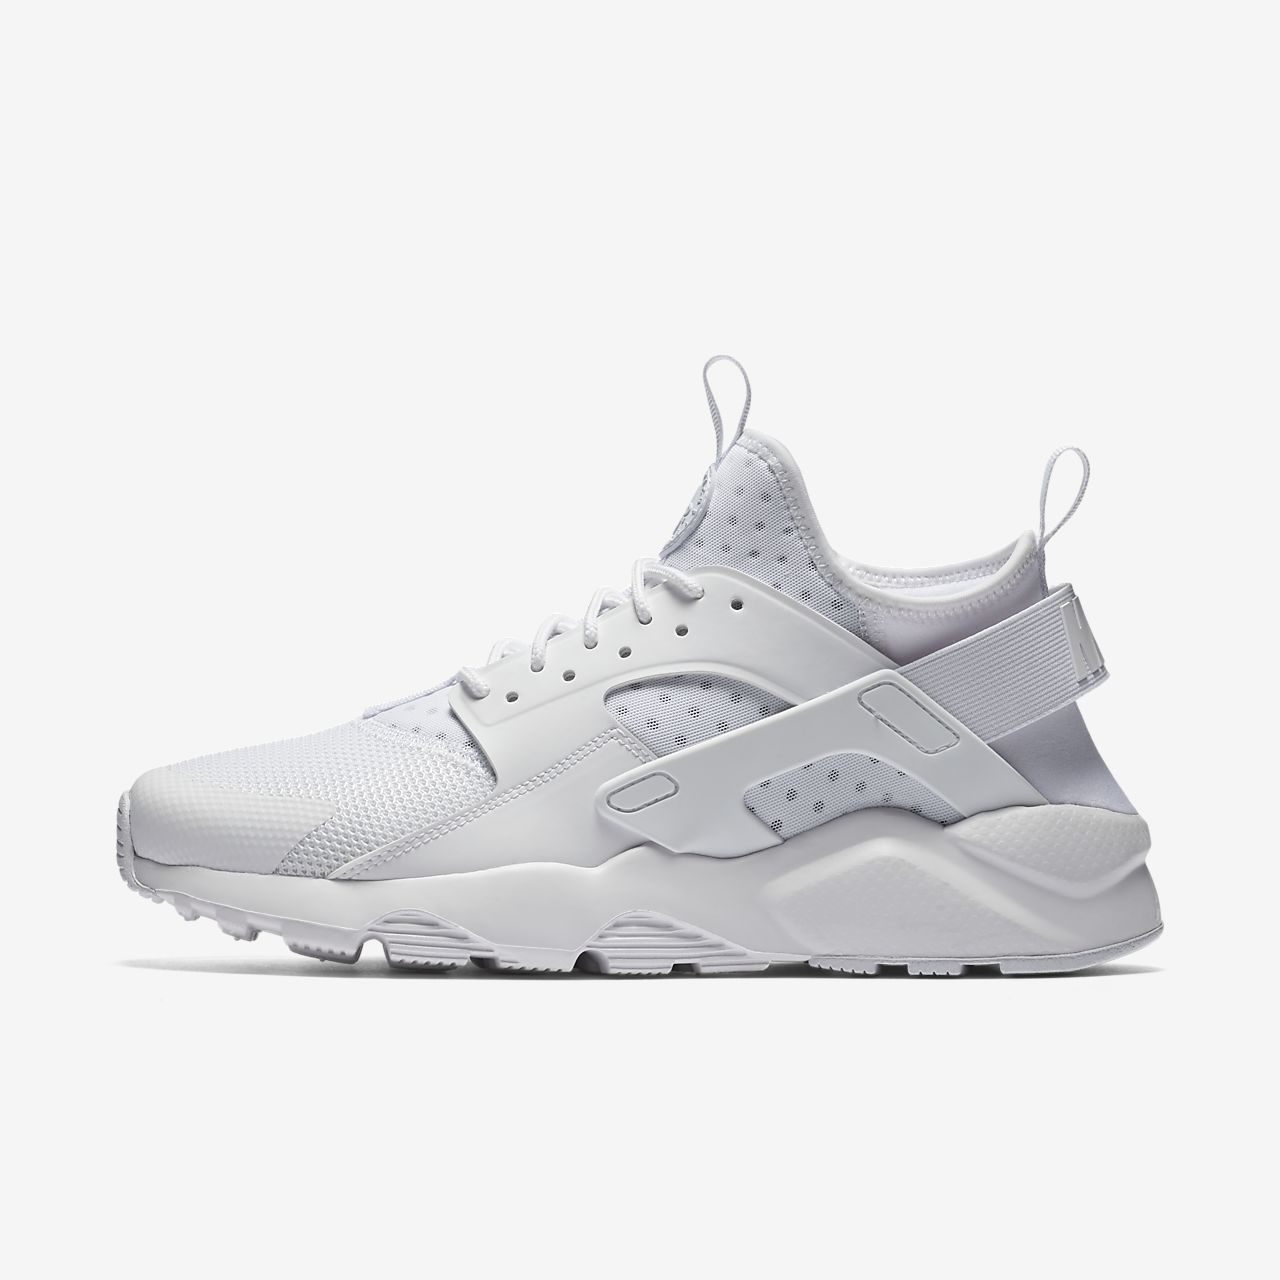 new nike air huarache sneakers men's running shoes nz